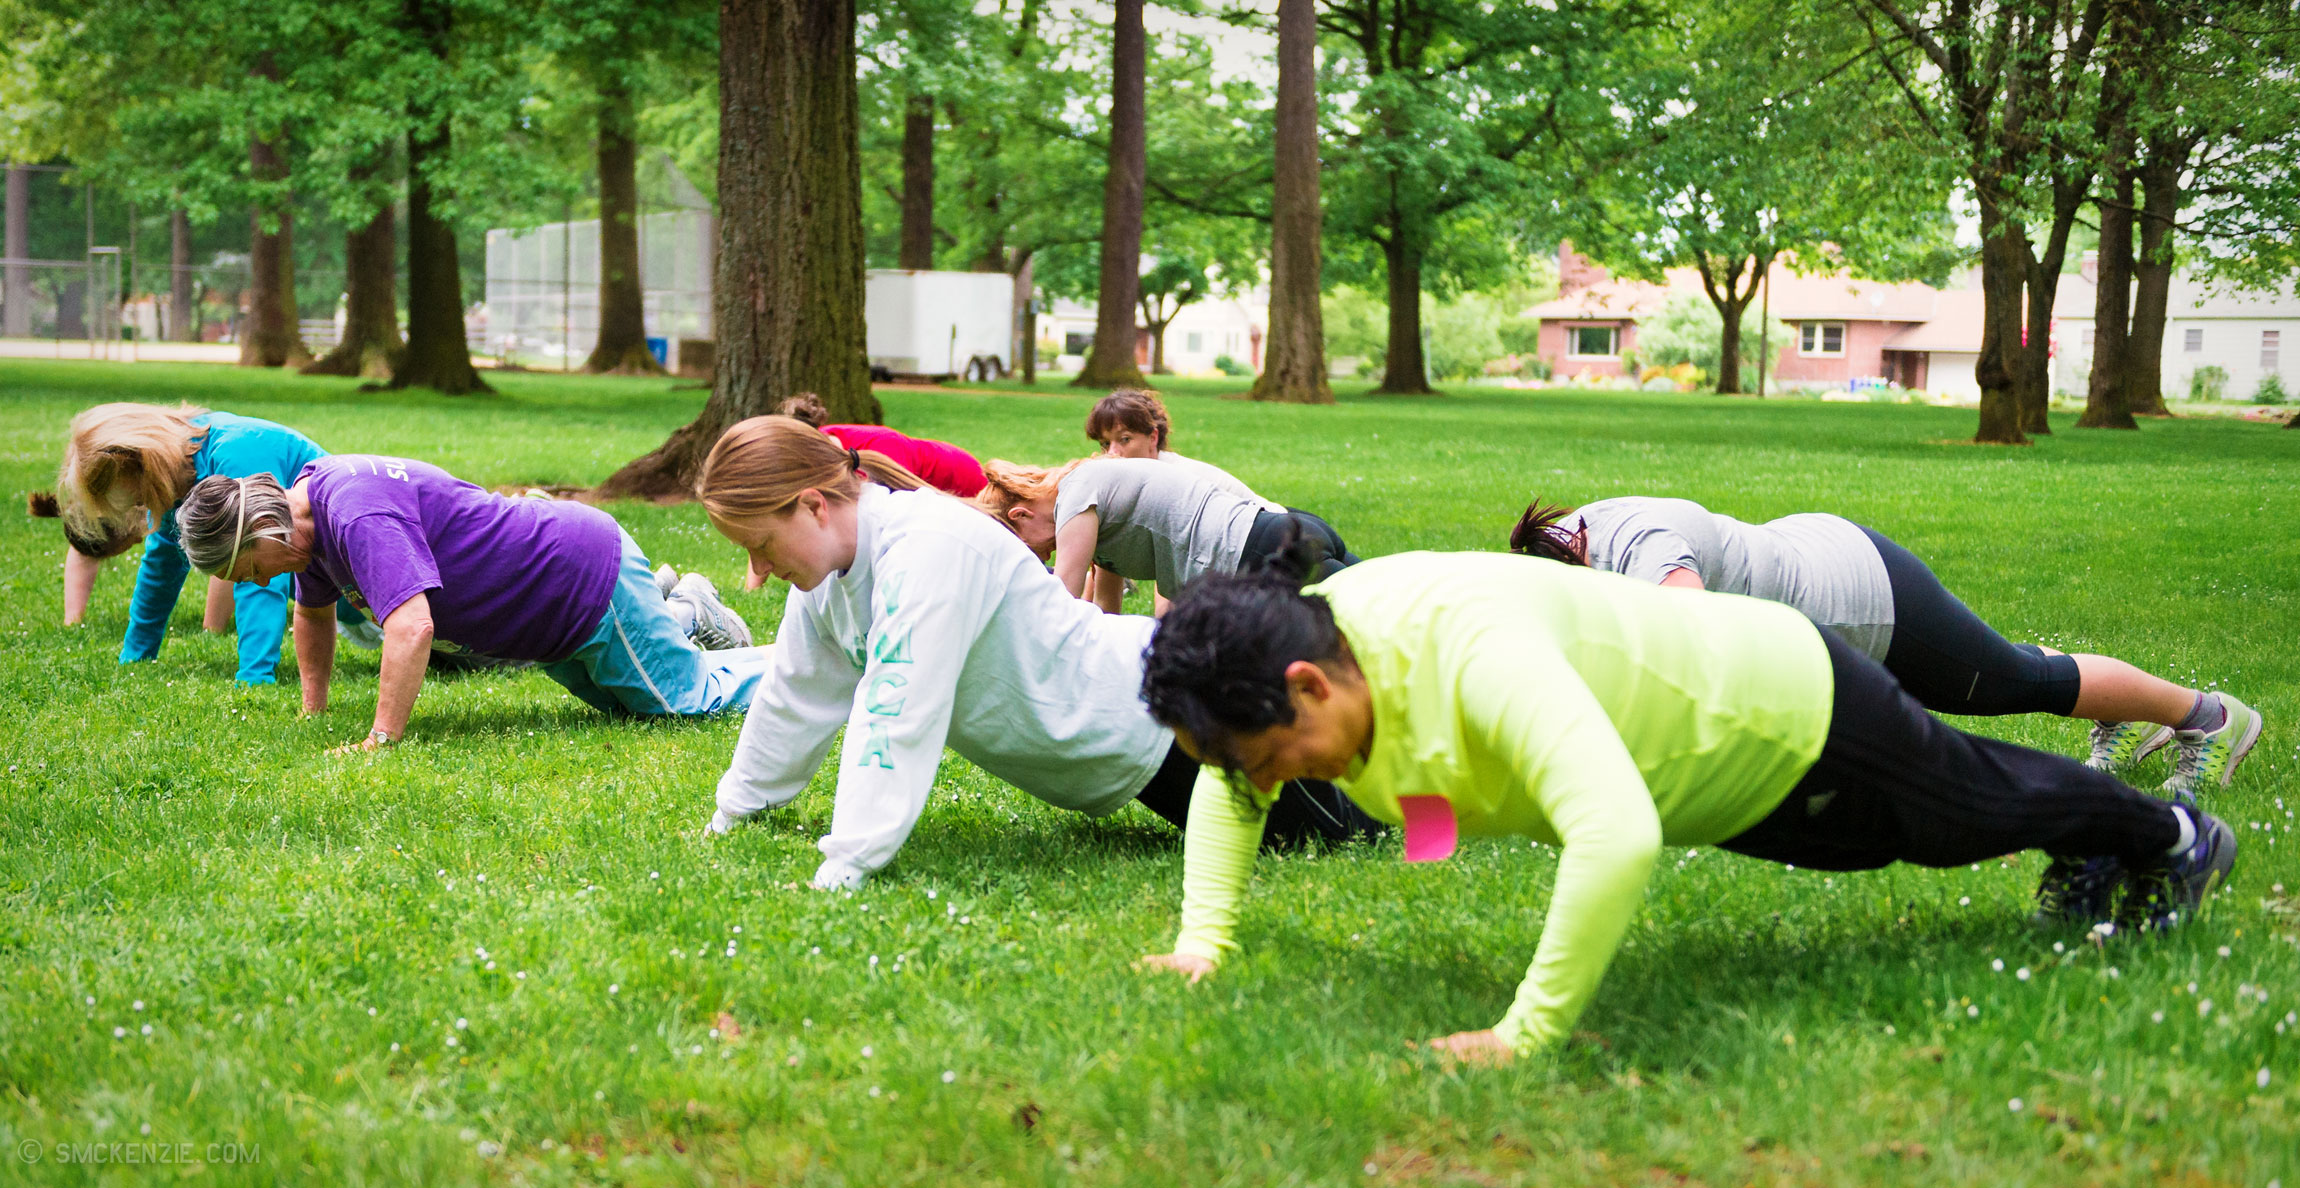 60-Minutes of Games, Body Weight Training, and Fun